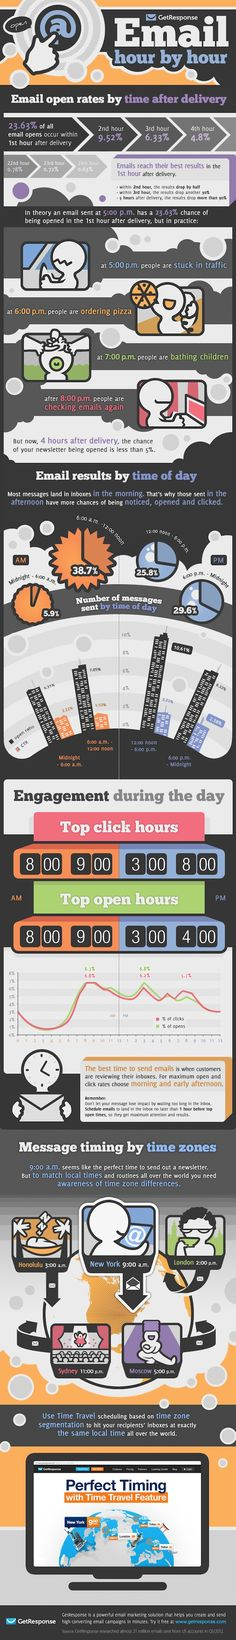 What's The Best Time Of Day To Send Emails? [Infographic]